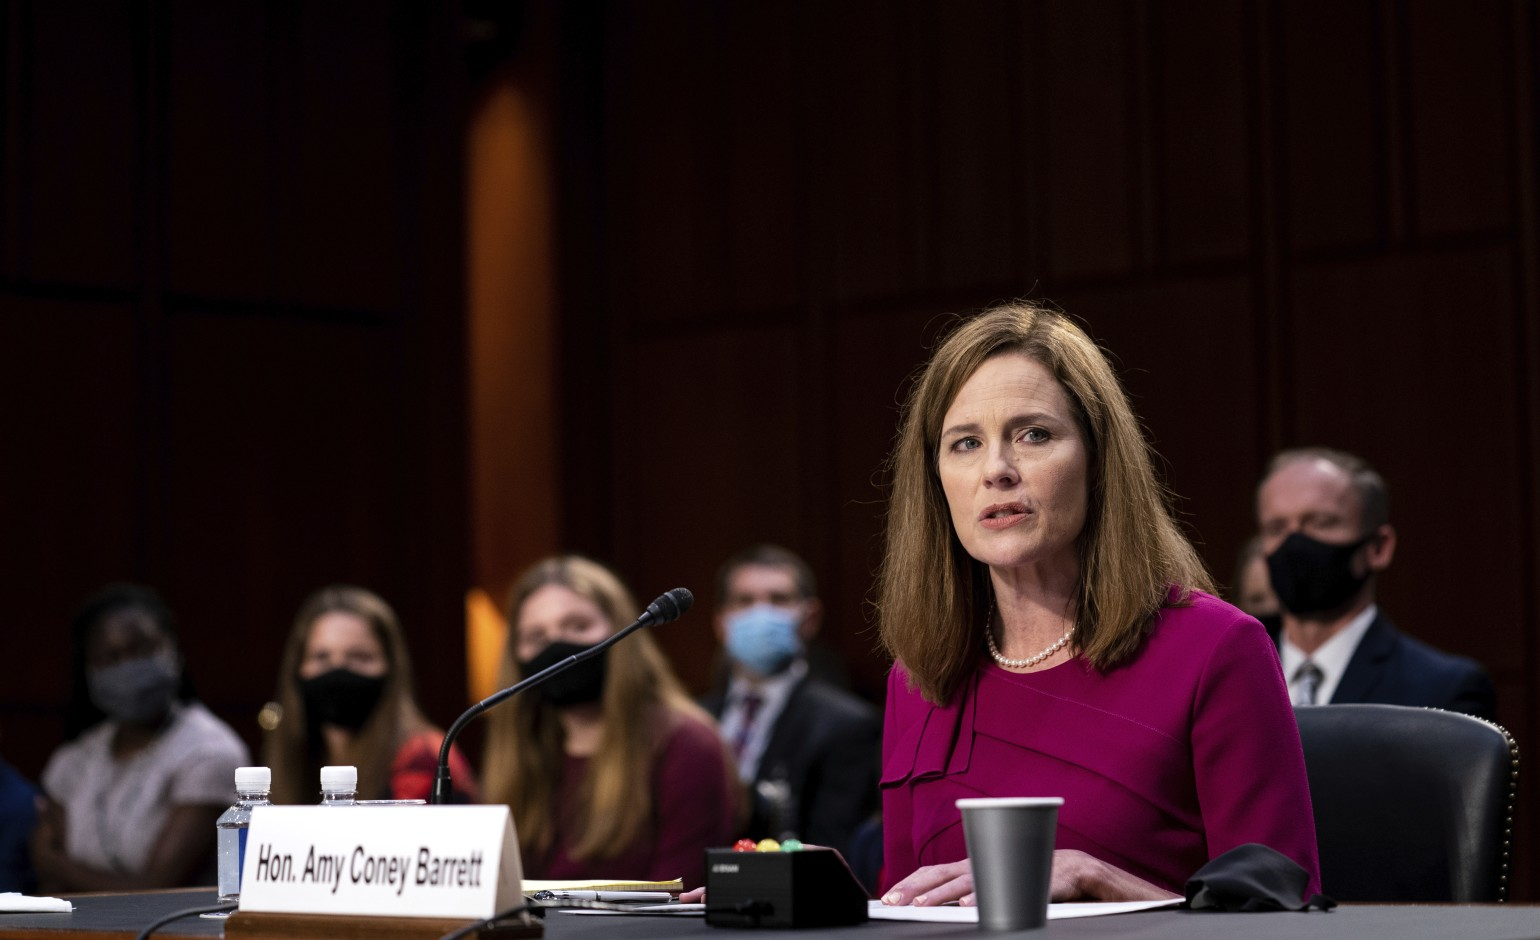 The judicial